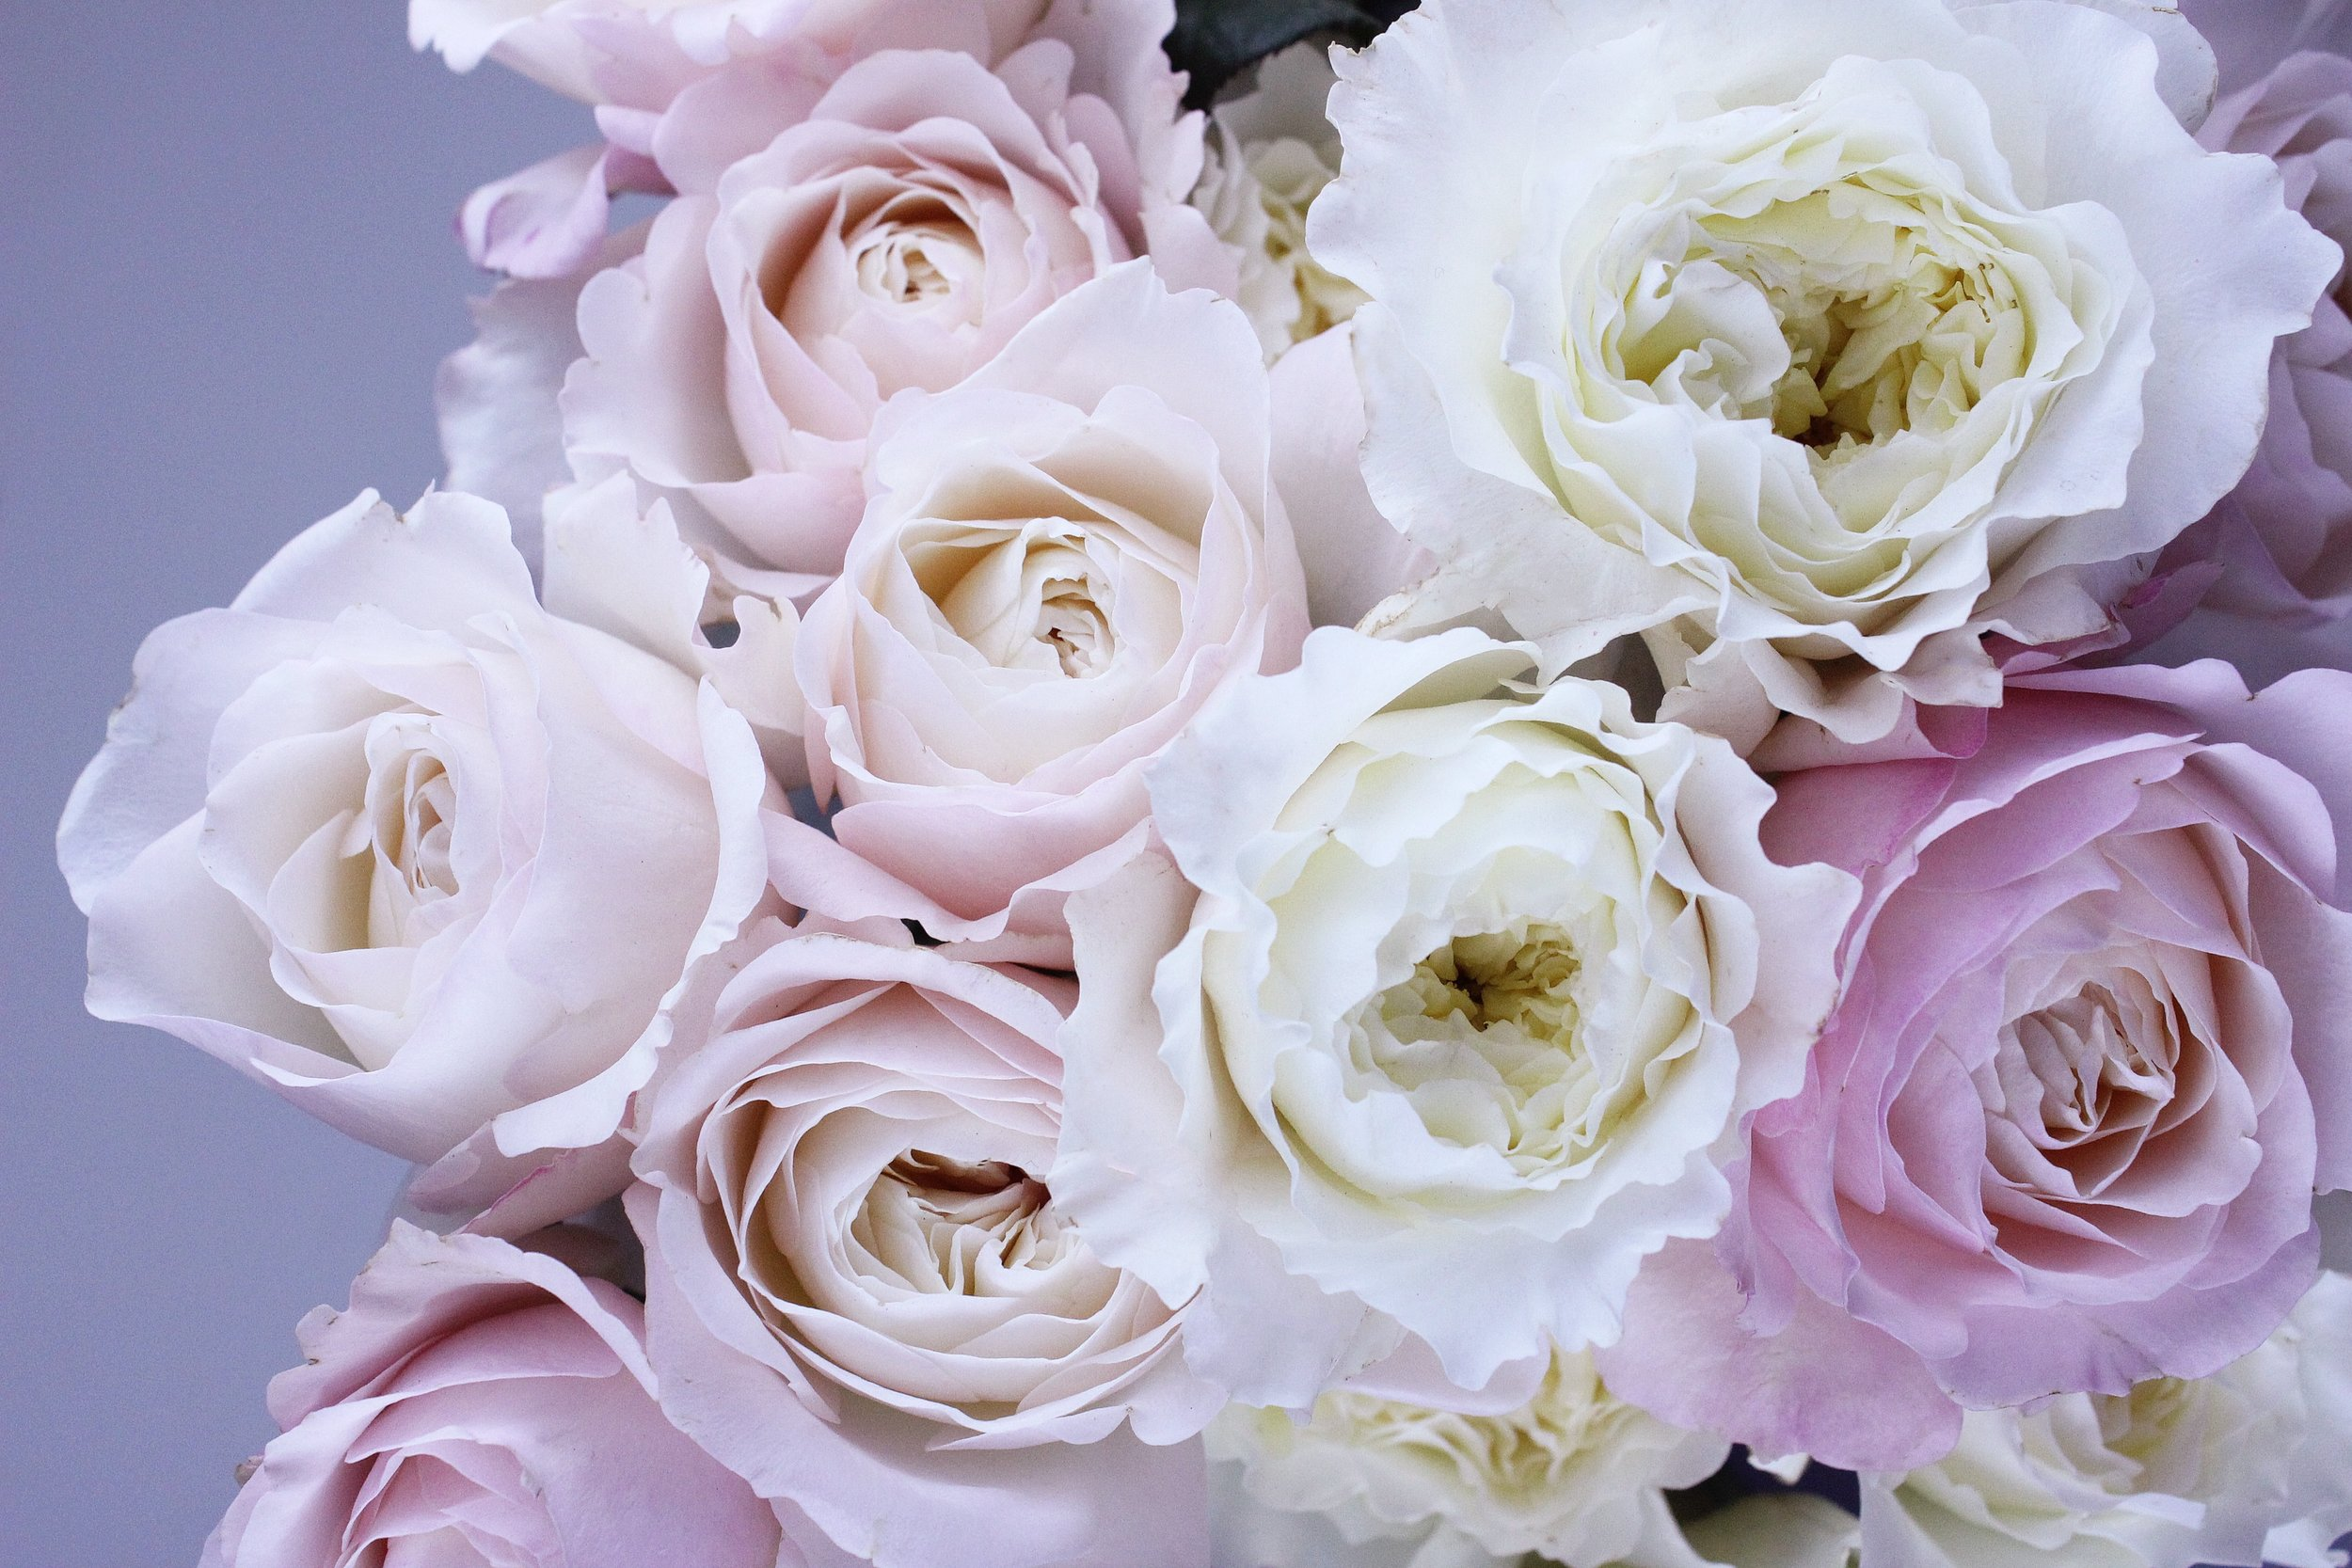 Roses in your wedding & reception